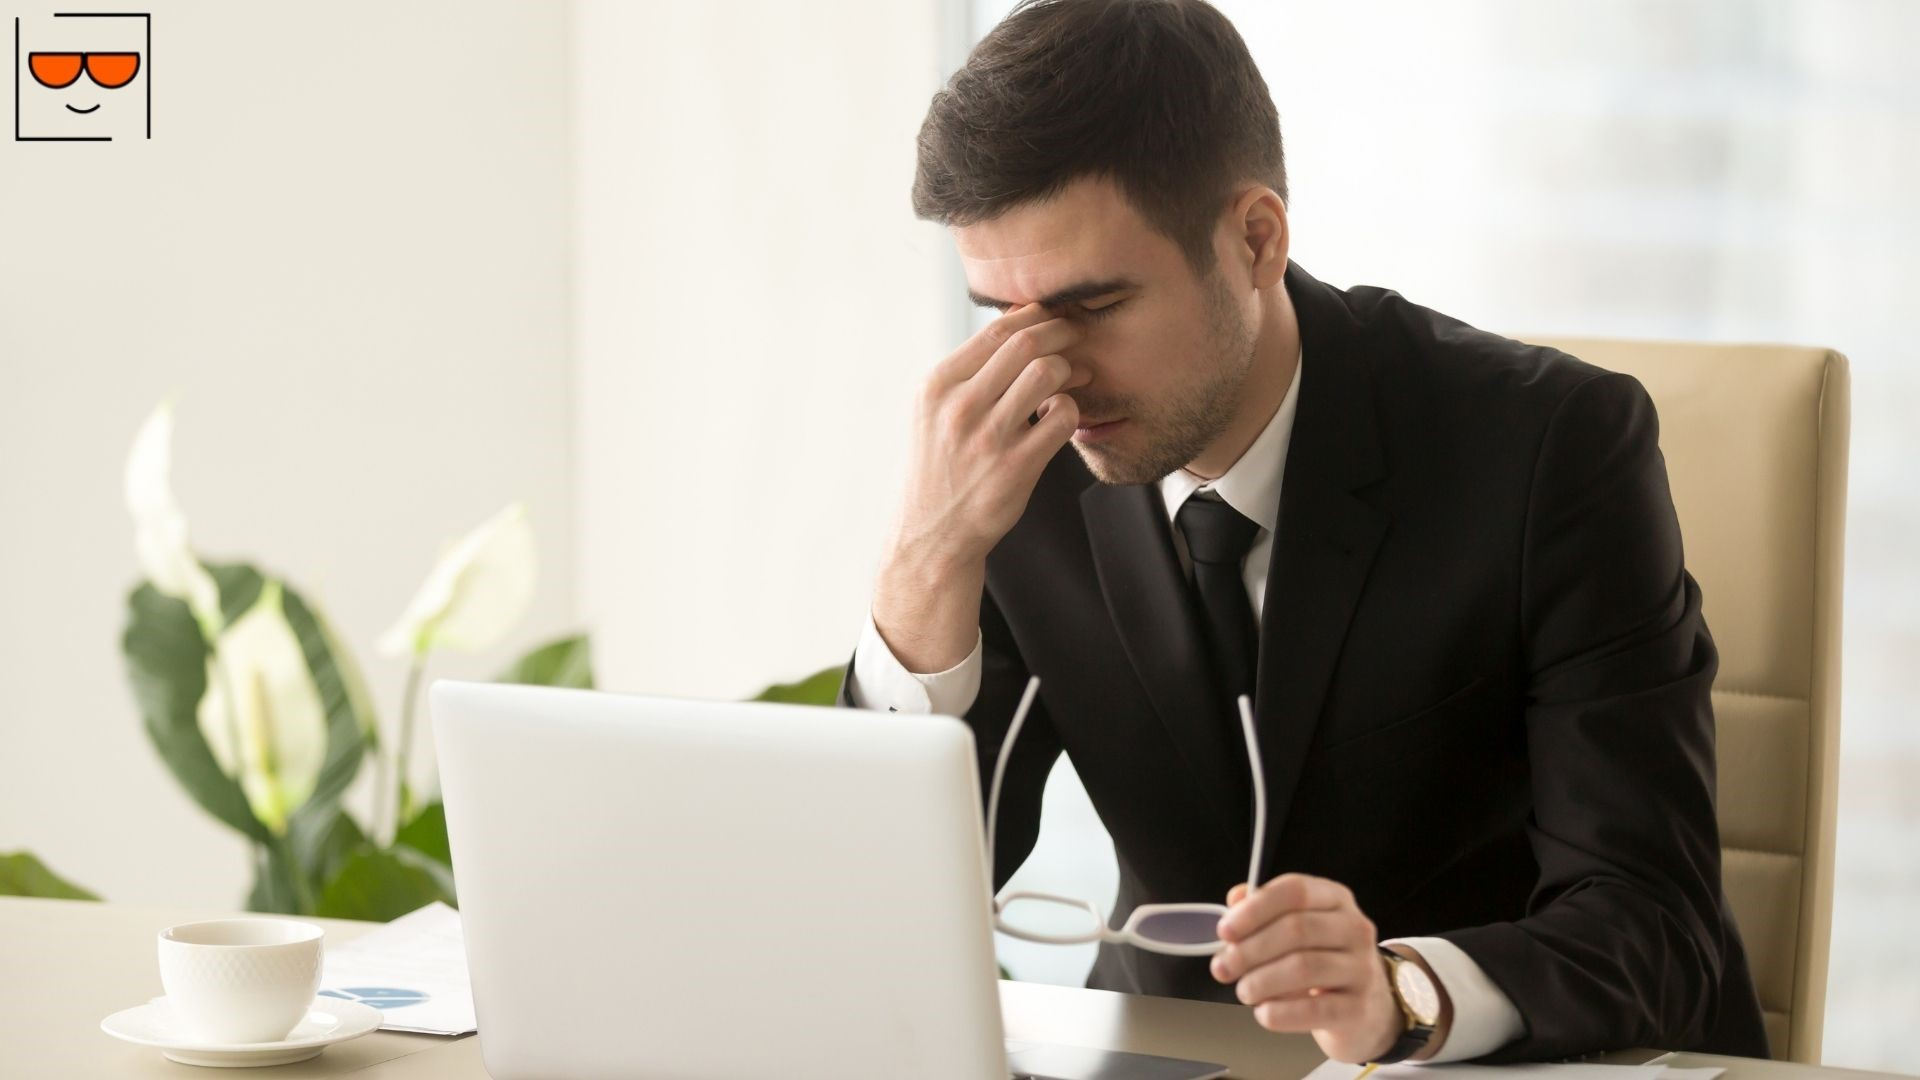 Man rubbing eyes due to eye strain from computer